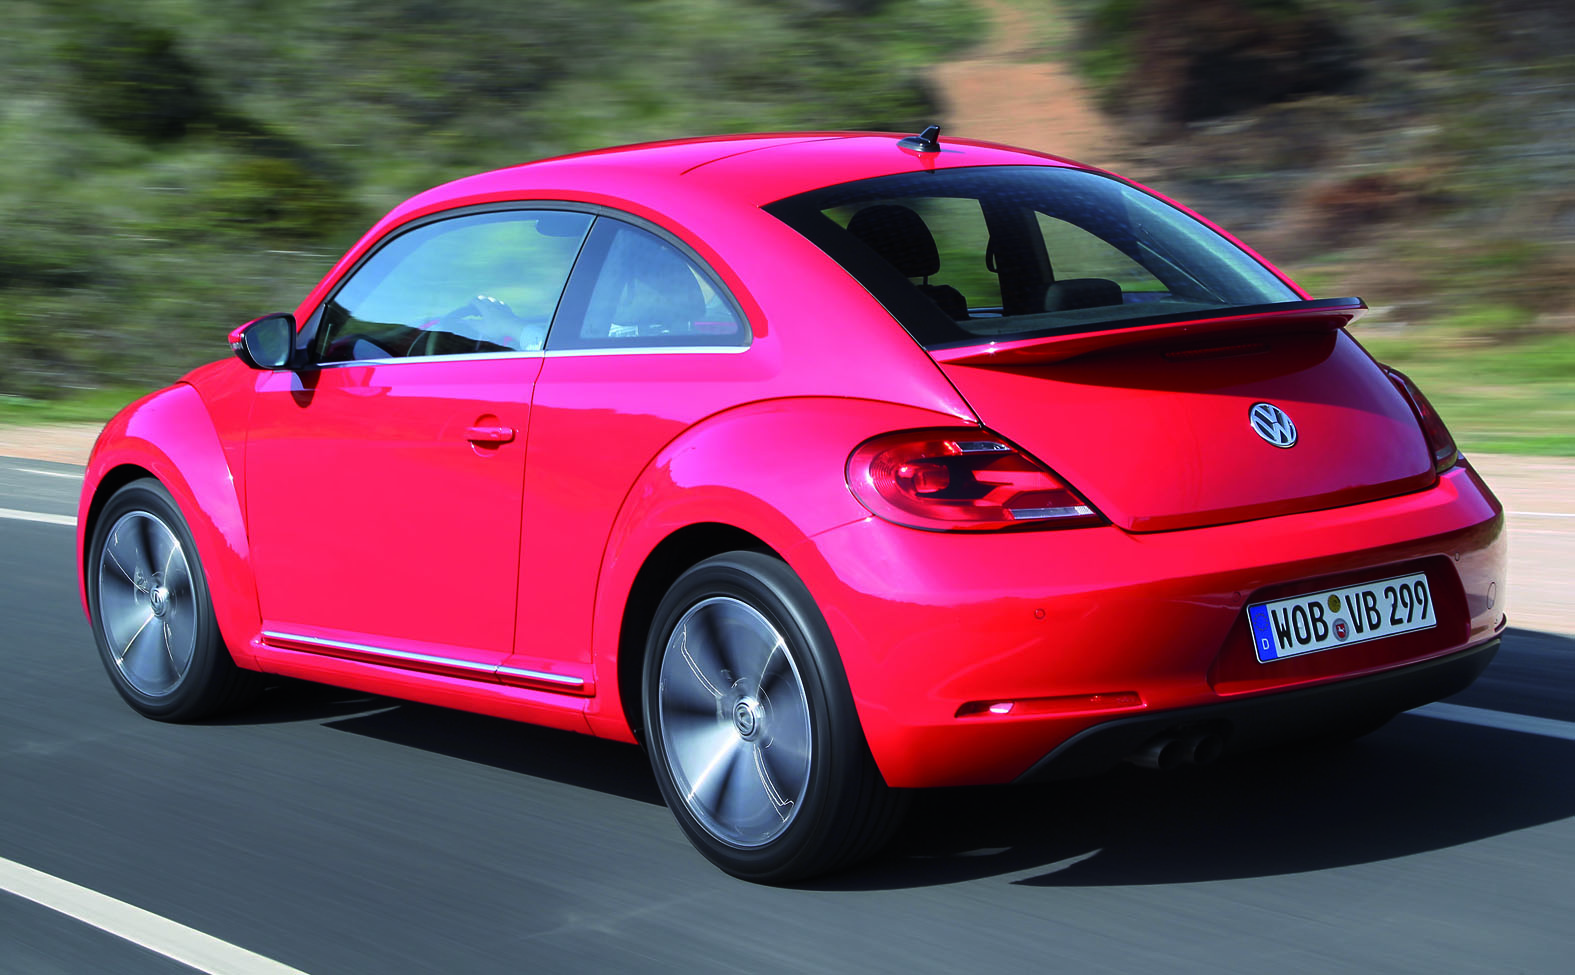 volkswagen beetle 1 4 tsi arrives in malaysia rm180k. Black Bedroom Furniture Sets. Home Design Ideas